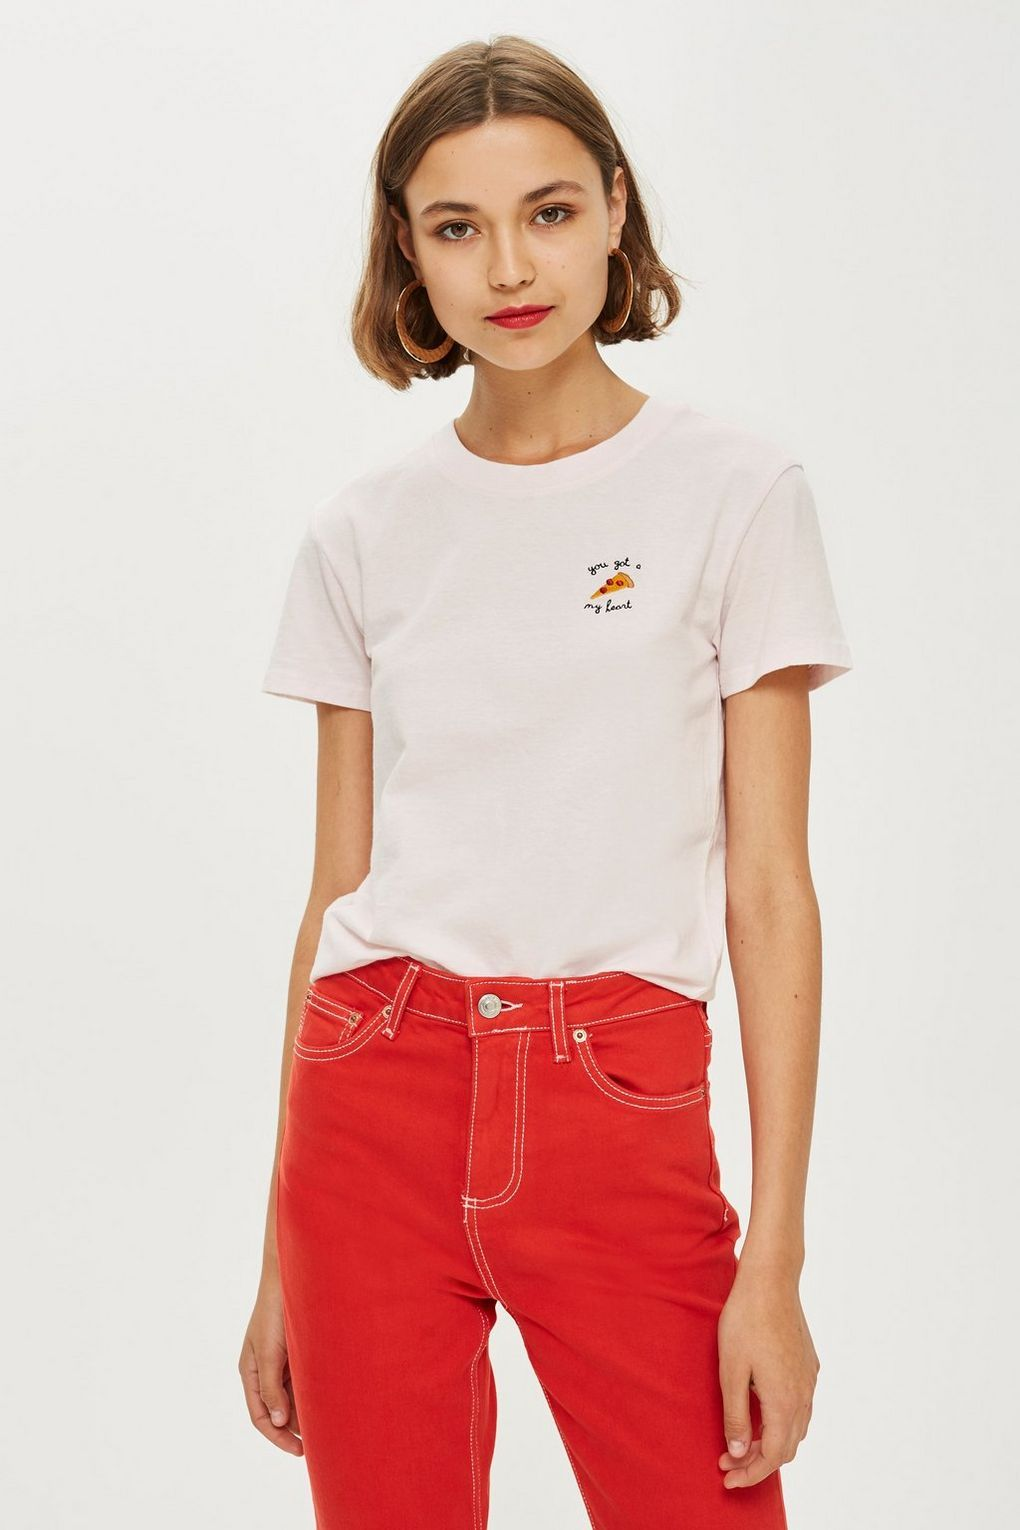 38f7b57d Pizza My Heart' T-Shirt - New In Fashion - New In | TopShop | Shirts ...